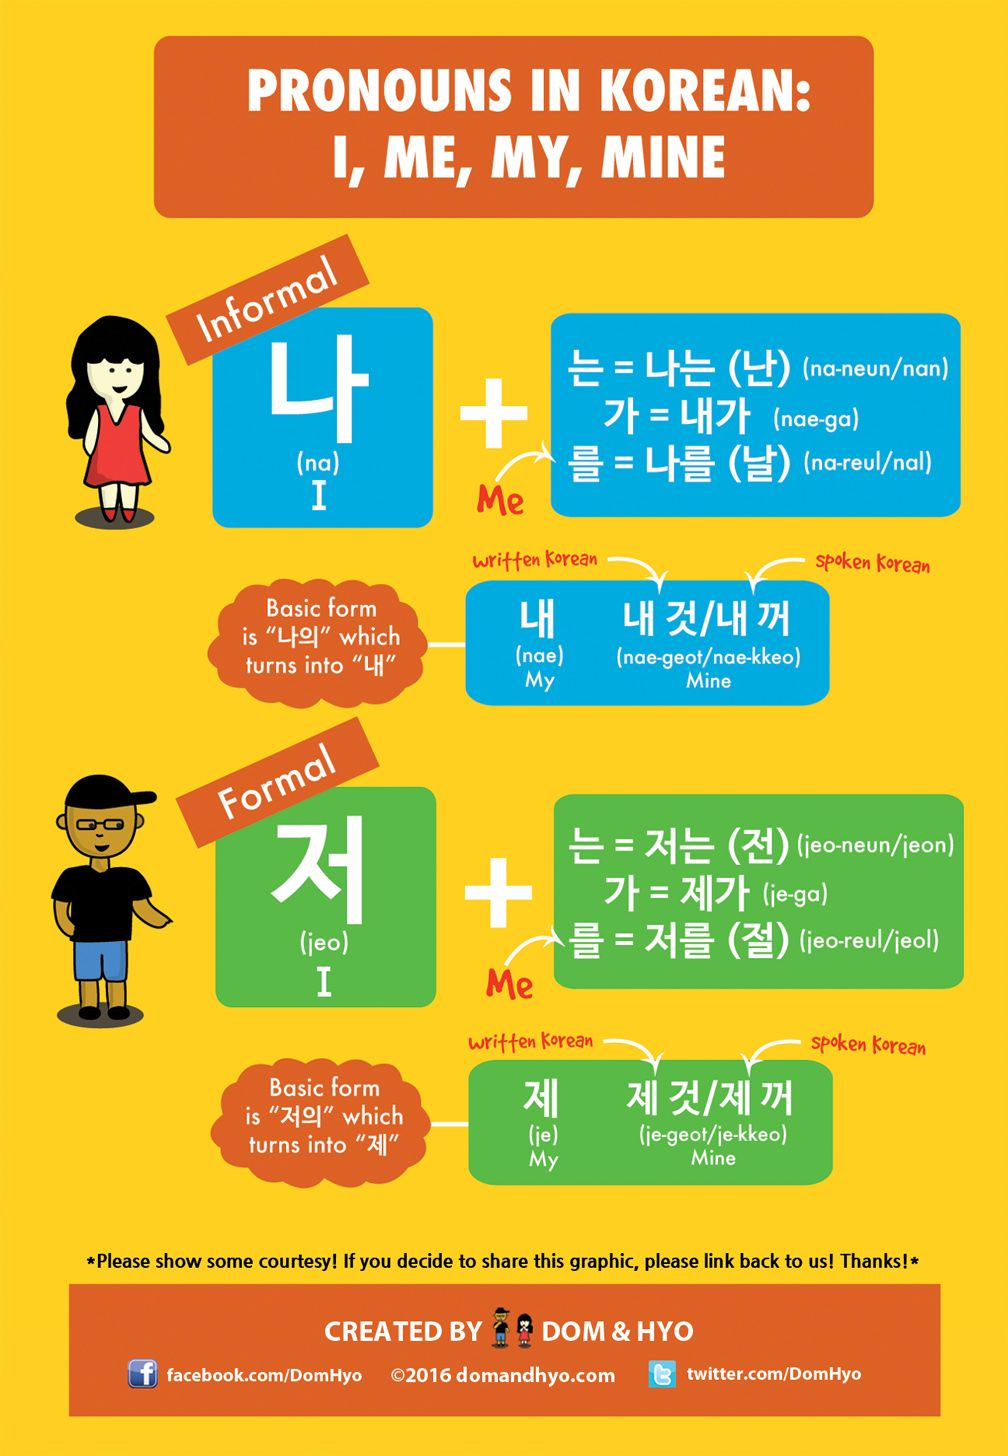 Learning Pronouns For I, Me, My, And Mine In Korean. -Dom